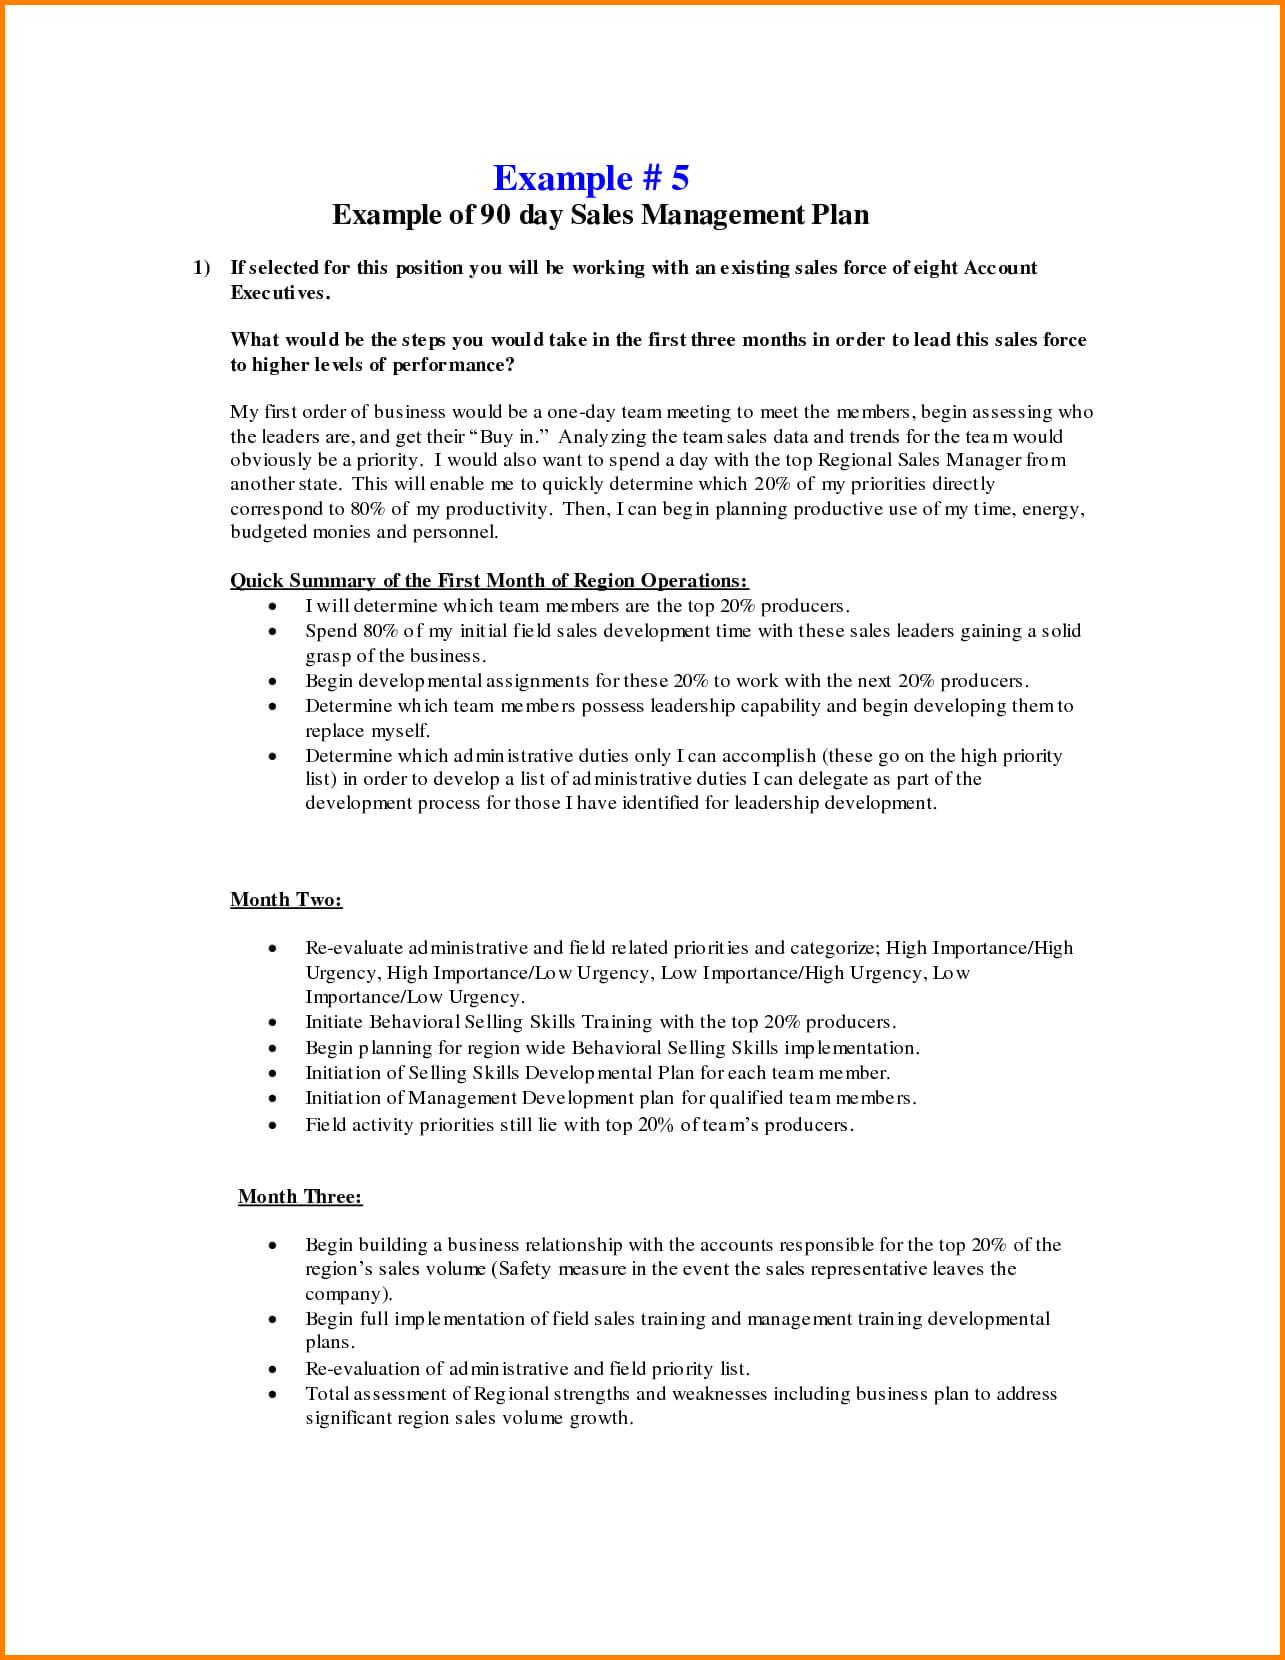 Business Plans Day Sales Management Plan Template Free For Intended For 30 60 90 Day Sales Management Plan Template